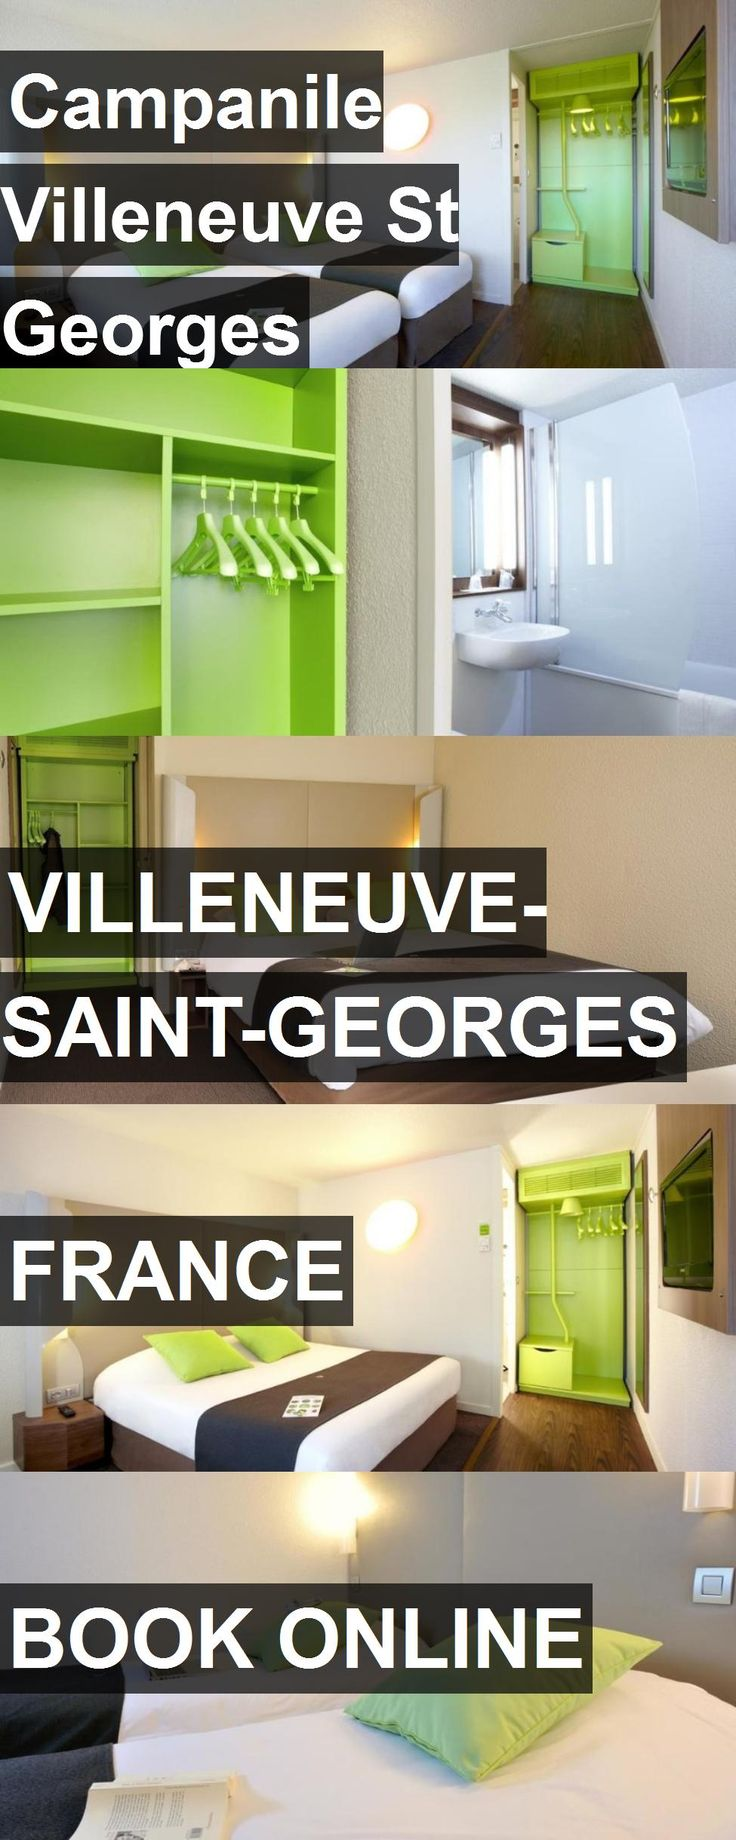 Hotel Campanile Villeneuve St Georges in Villeneuve-Saint-Georges, France. For more information, photos, reviews and best prices please follow the link. #France #Villeneuve-Saint-Georges #CampanileVilleneuveStGeorges #hotel #travel #vacation